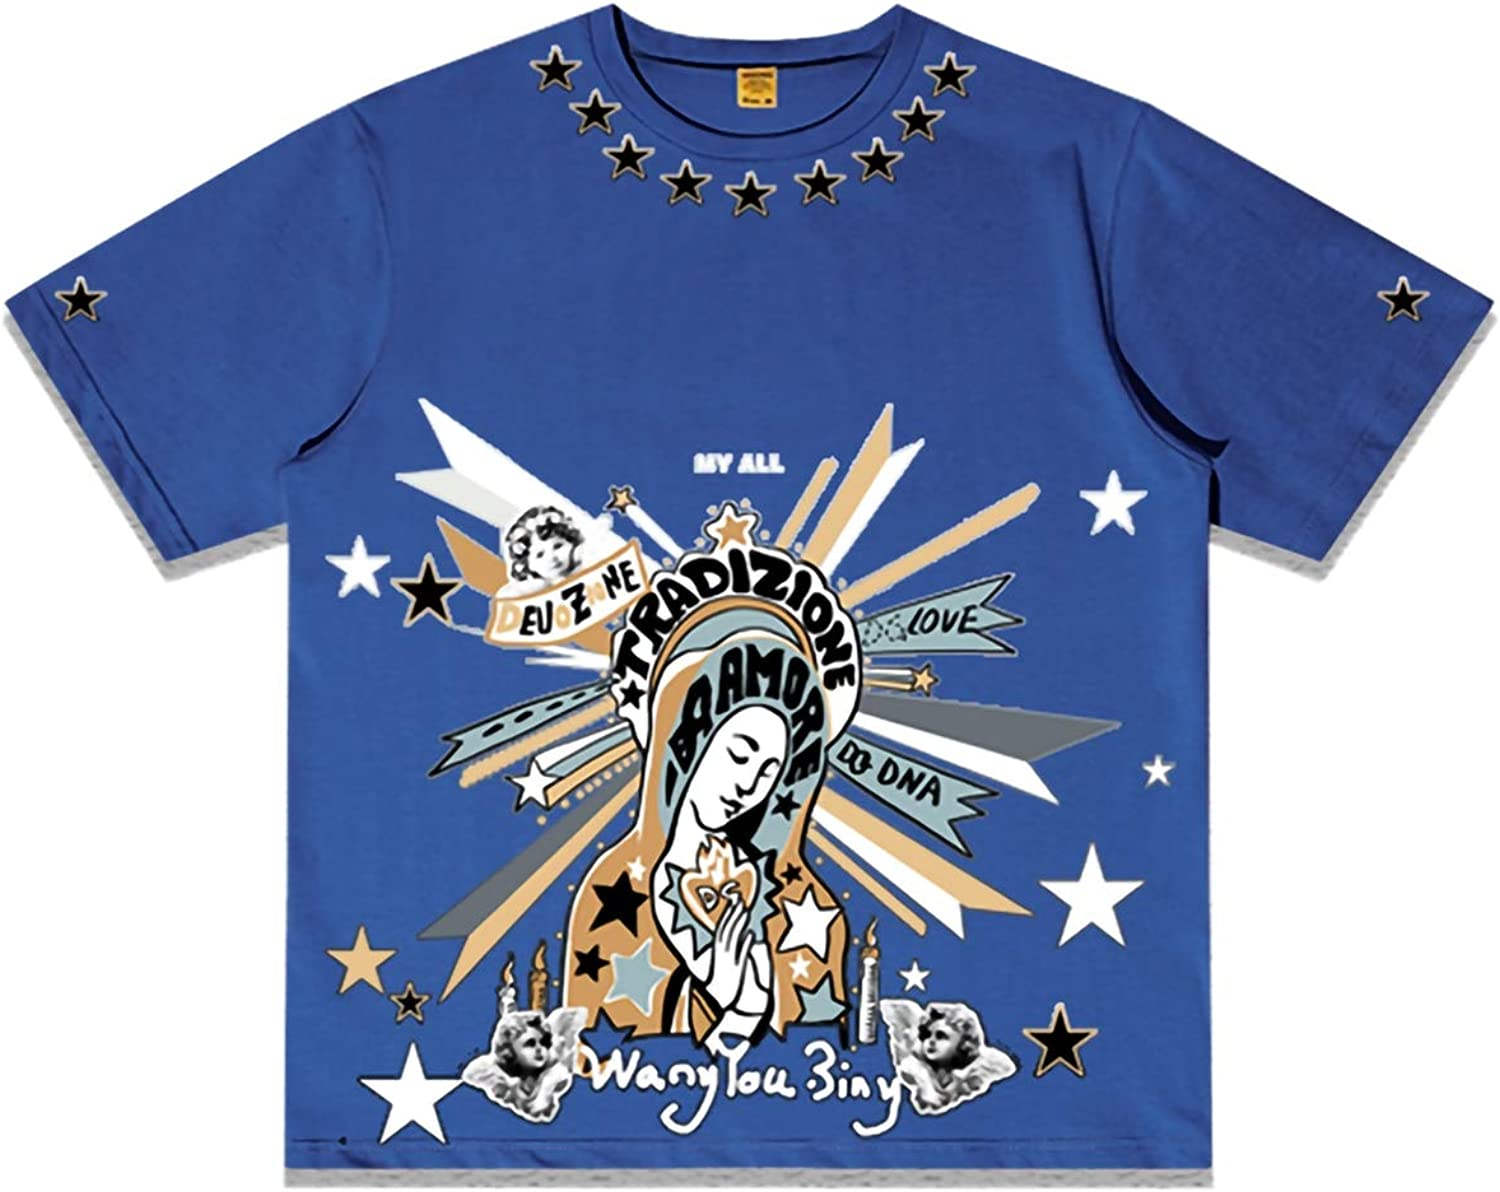 Blessed Virgin Mary Short Sleeve TShirt Fashion Crewneck Top Tee,6,L